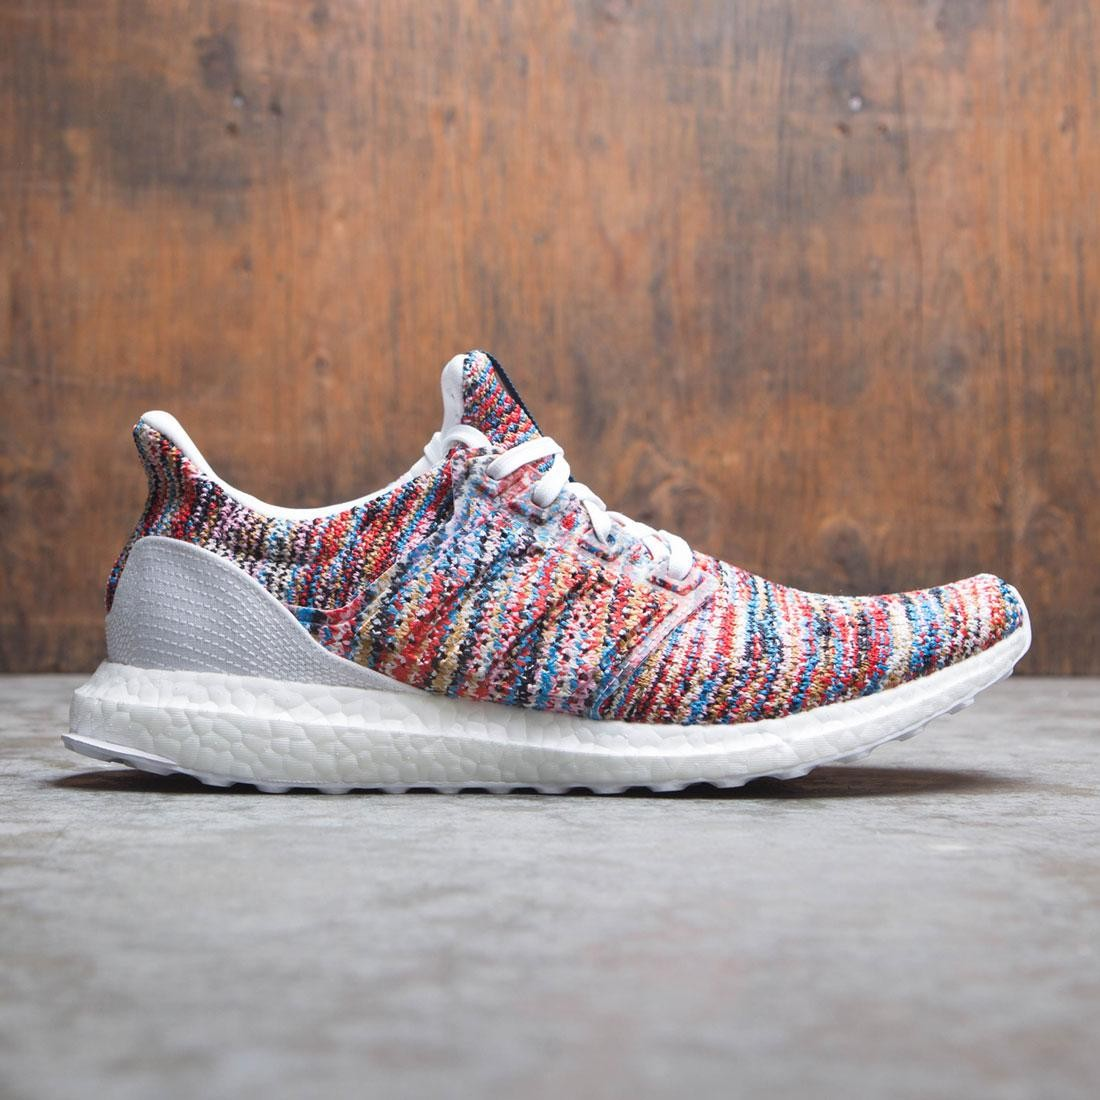 c83378b26c6 Adidas x Missoni Men UltraBOOST CLIMA white shock cyan active red